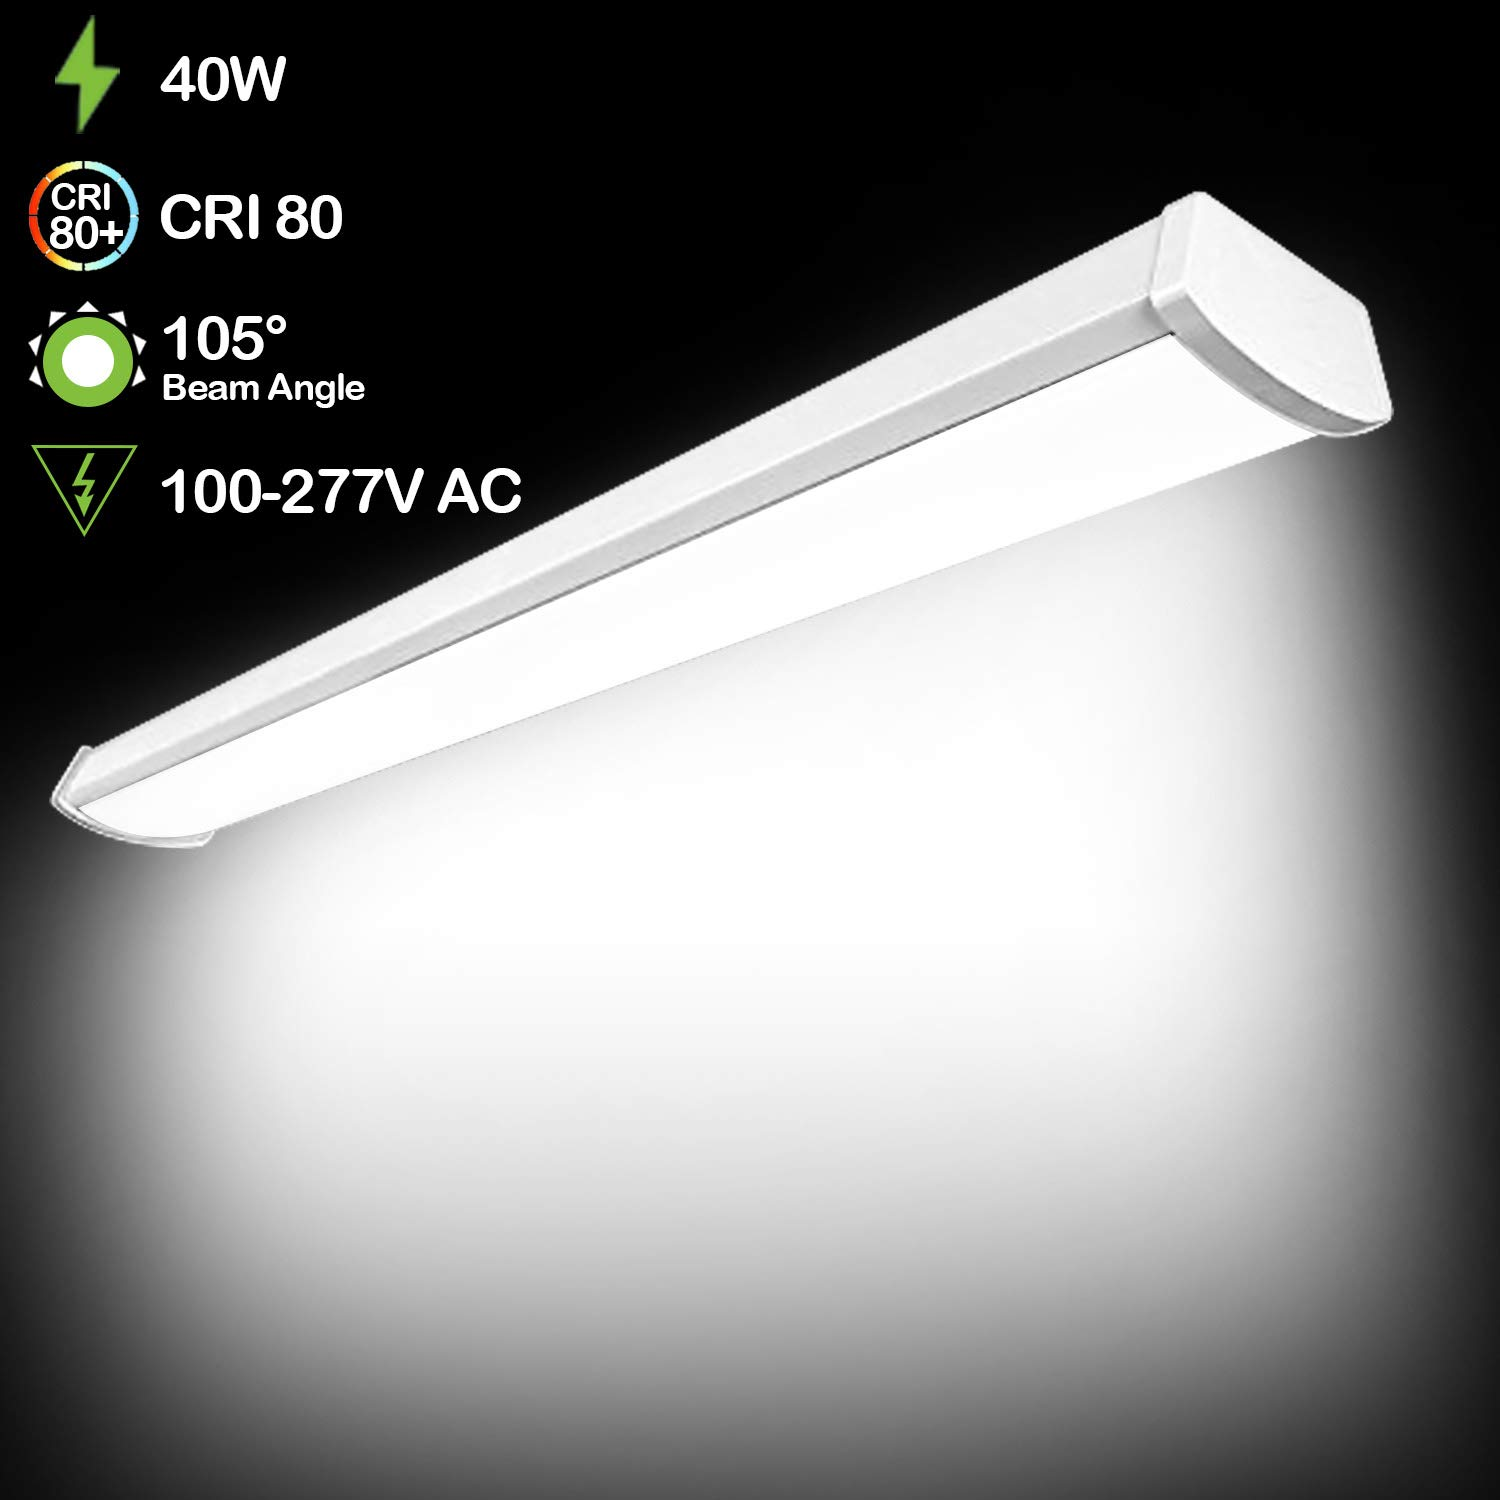 Hykolity 4ft 40w Led Garage Shop Light Wraparound Flushmount Commercial Wiring Flouresent Lights Office Ceiling Lamp 2800 Lumens 5000k Daylight White 64w Fluorescent Equivalent